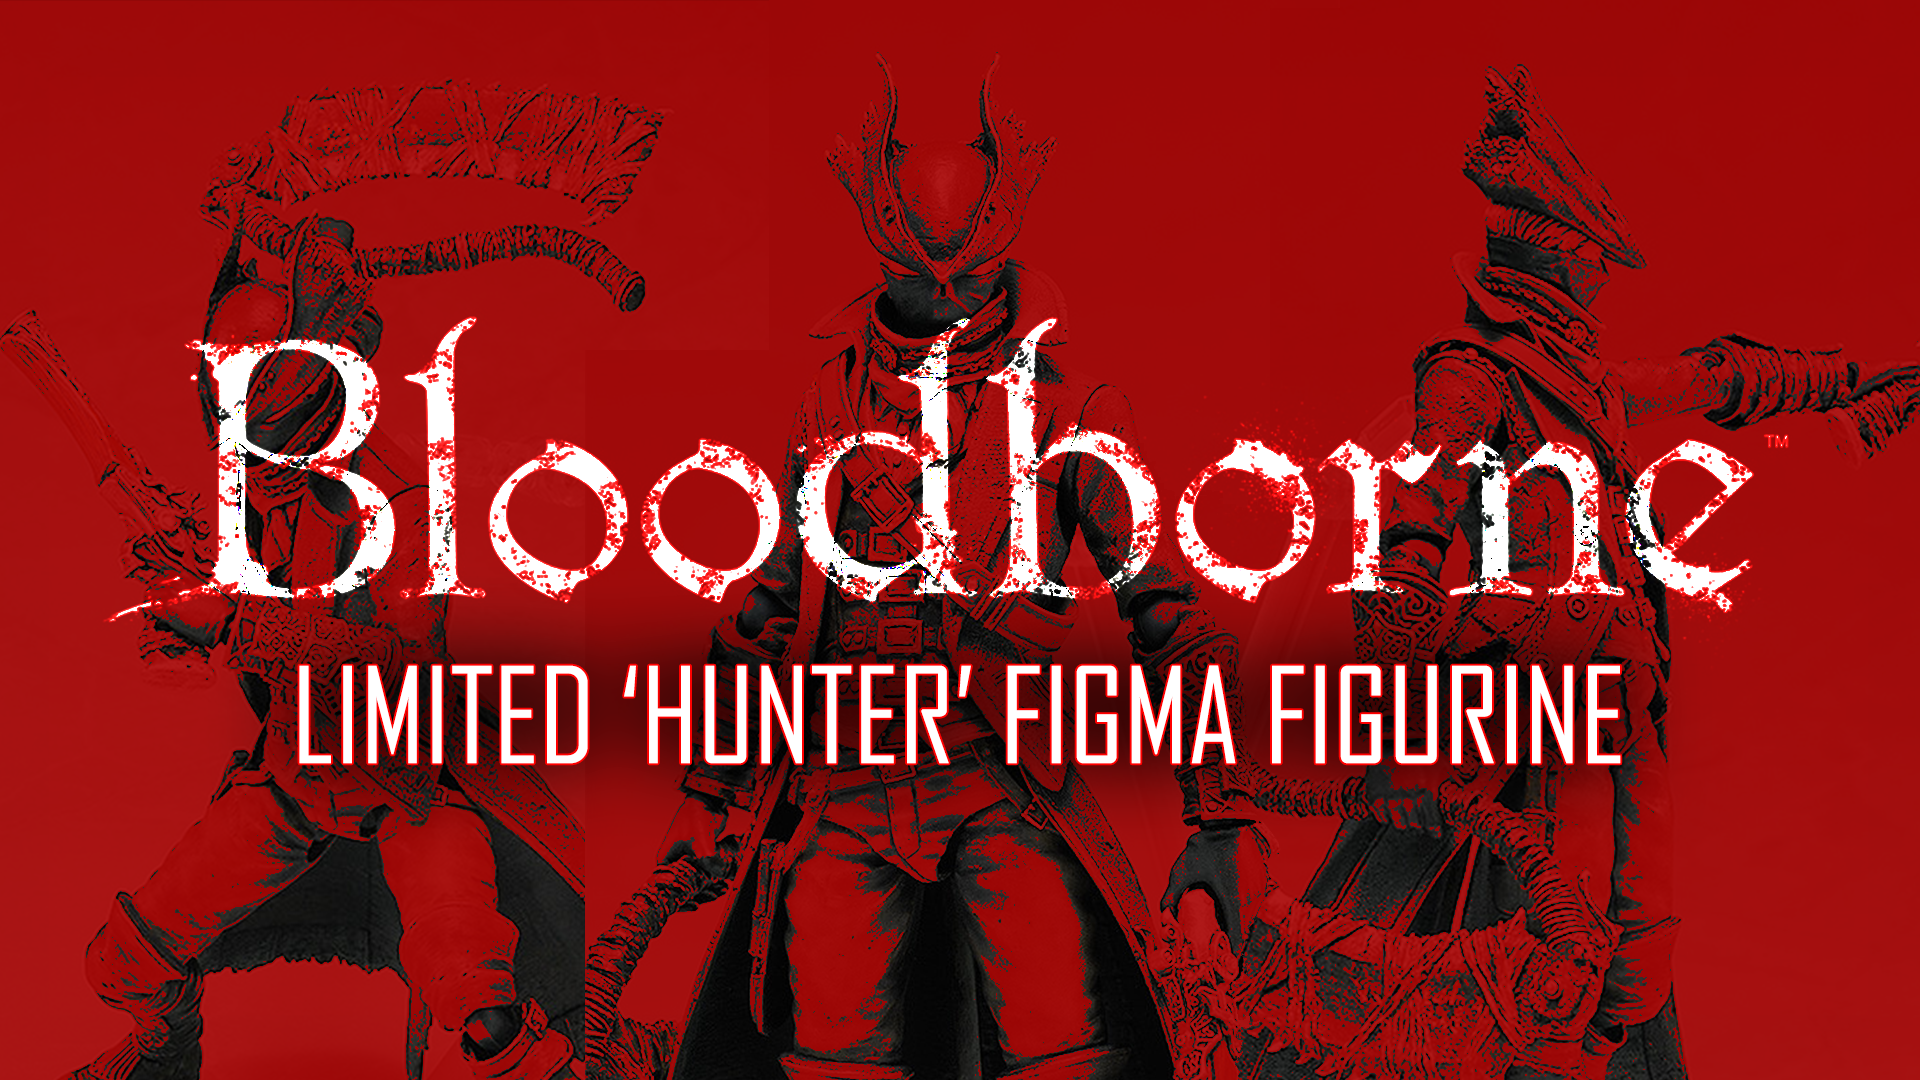 bloodborne-limited-hunter-figma-figurine-playstation-4-ps4-fromsoftware-goodsmile-play-asia